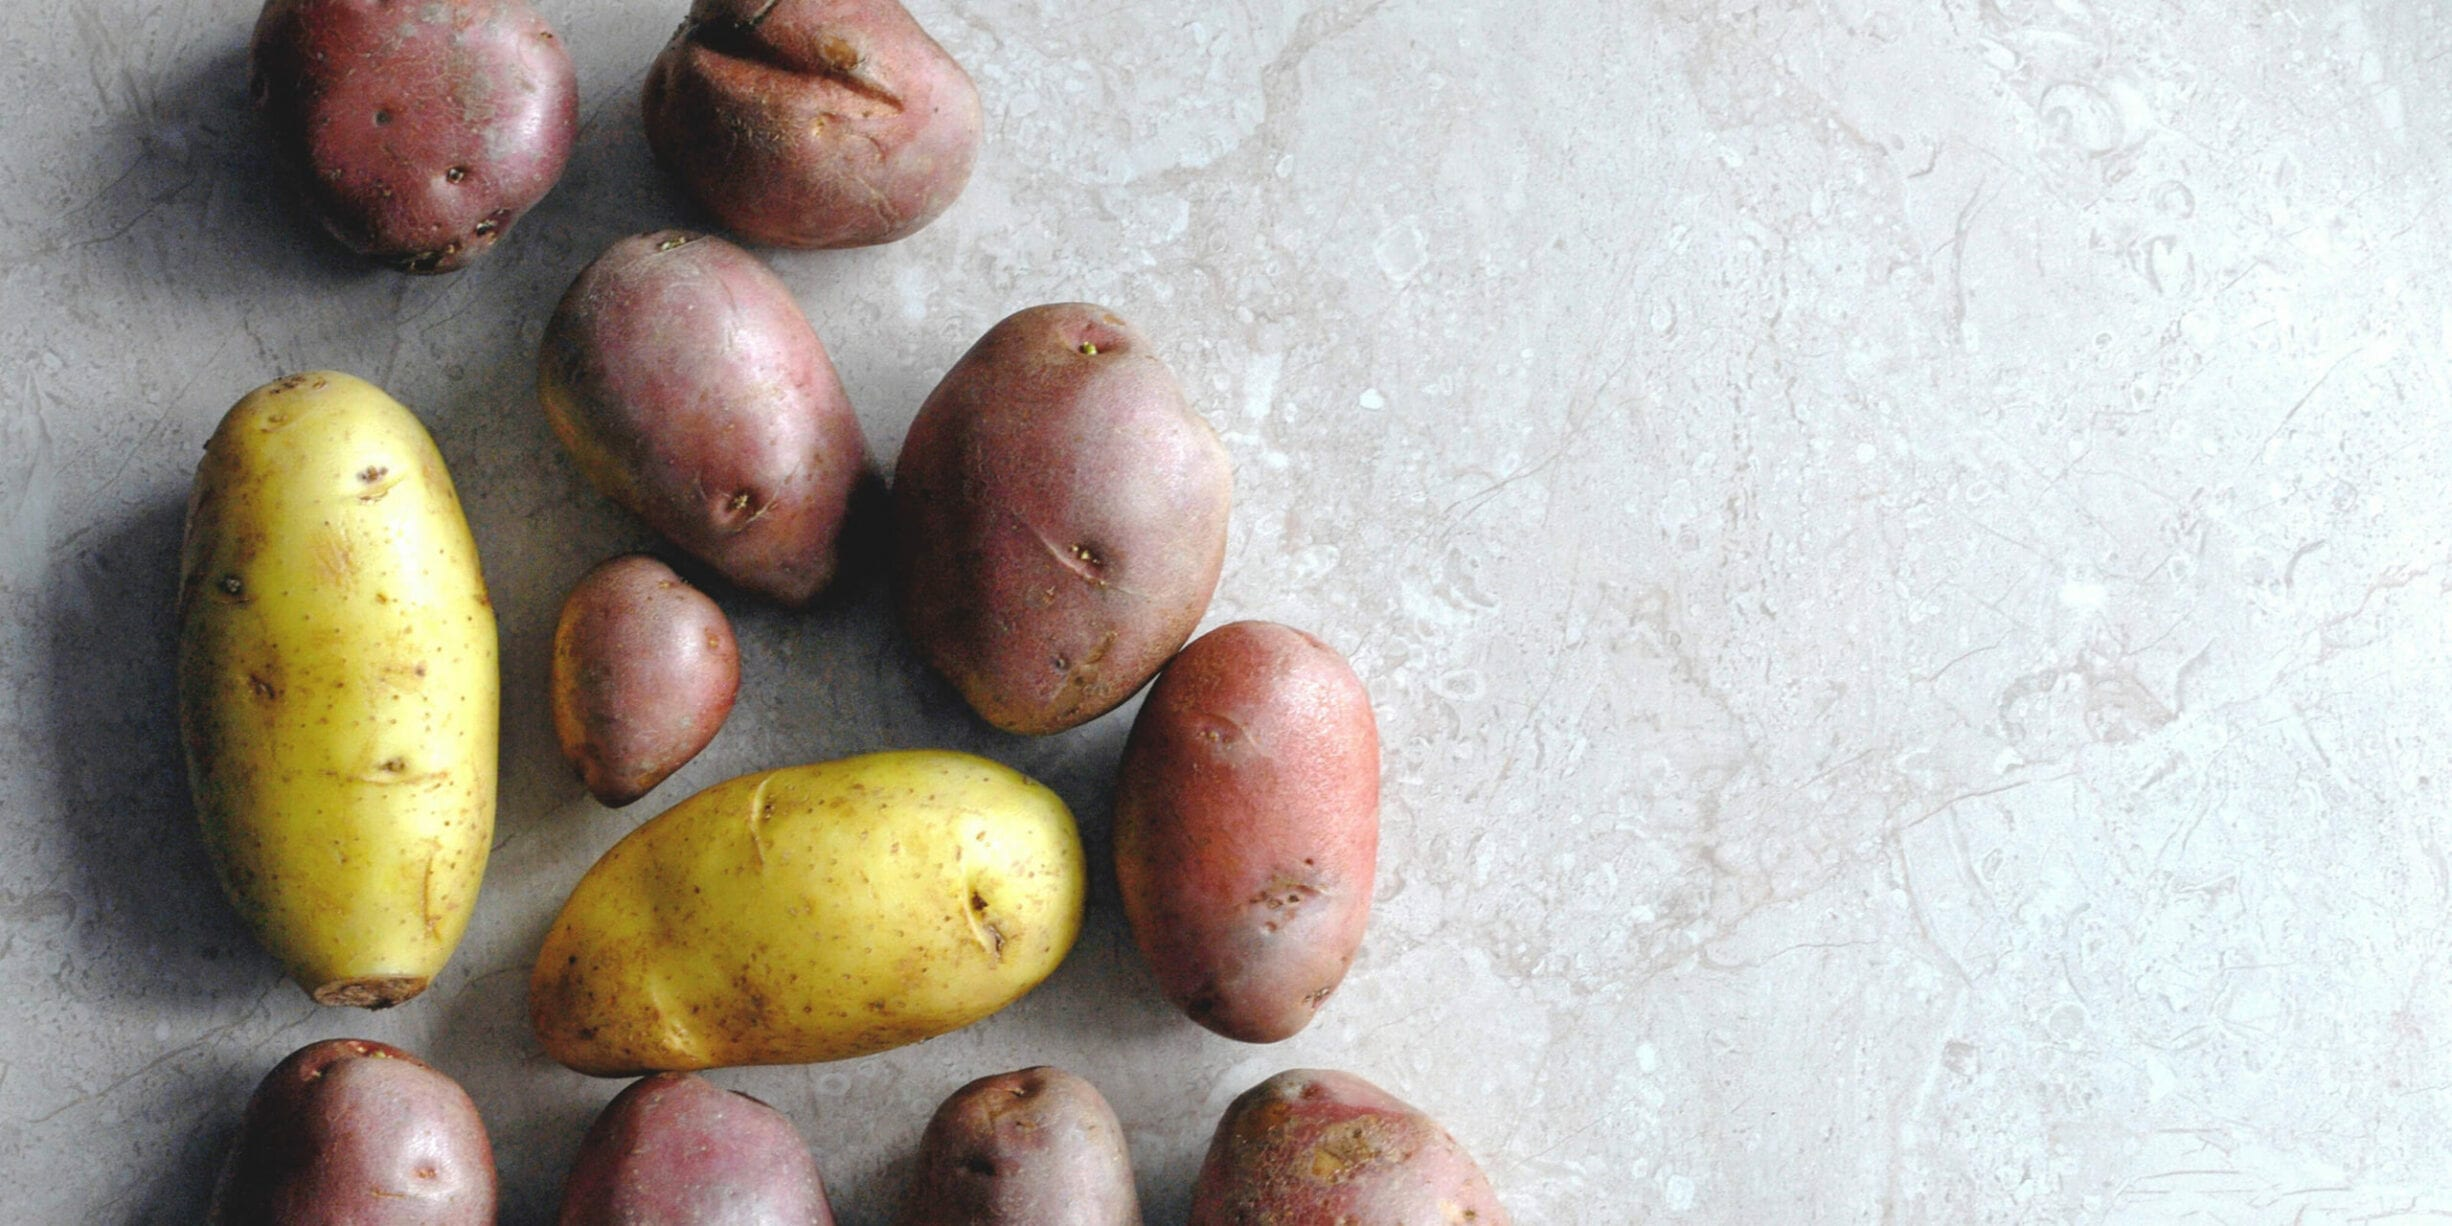 variety of potatoes on grey background